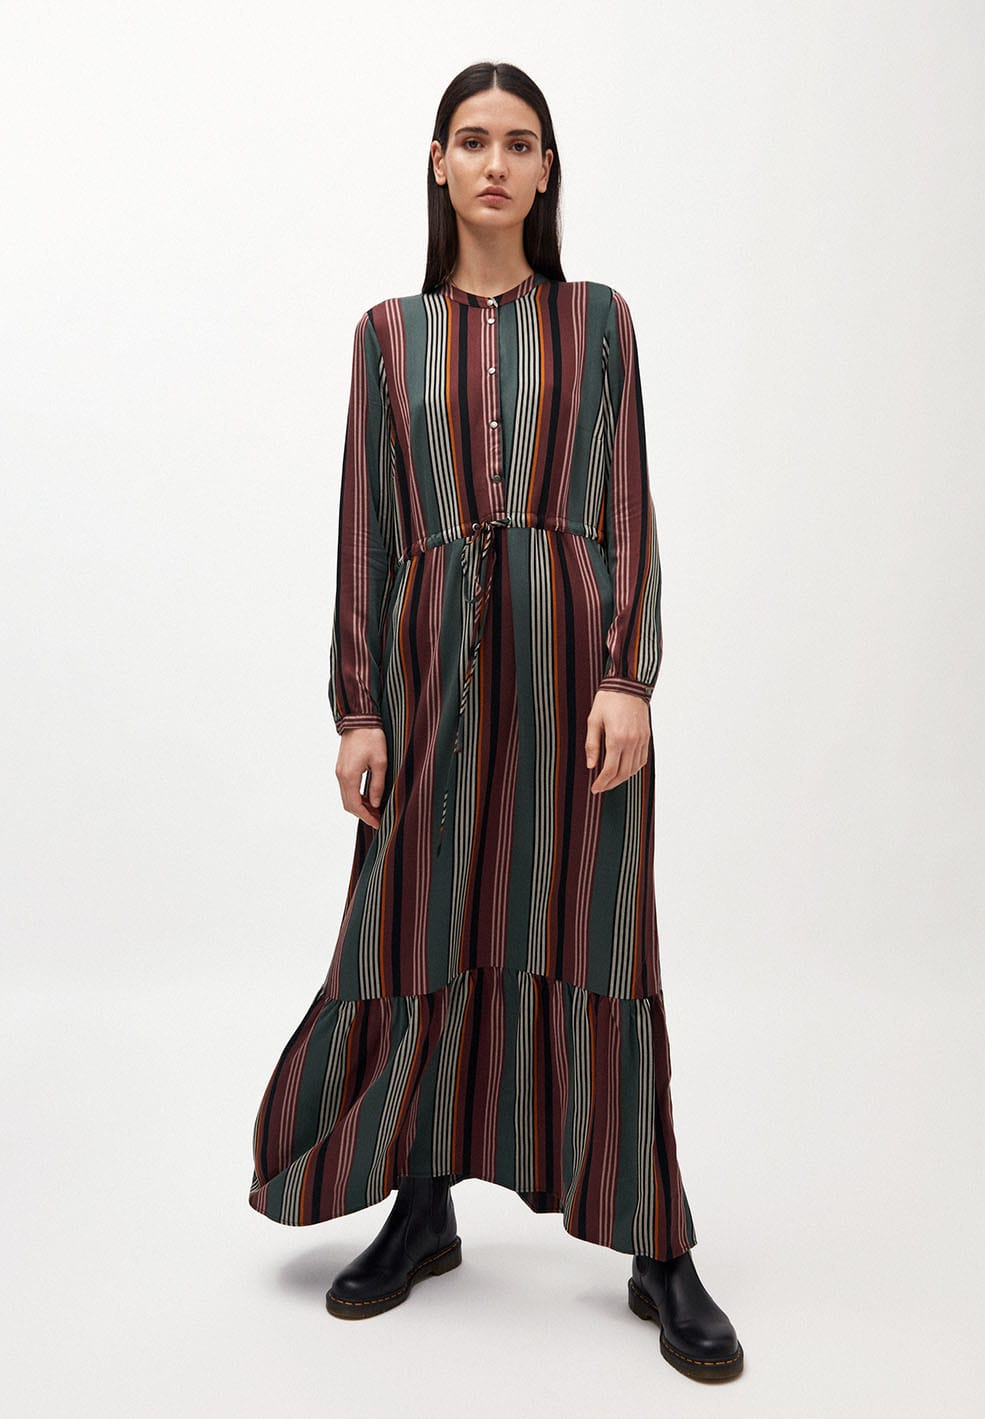 EYRAA CLUSTERED STRIPES